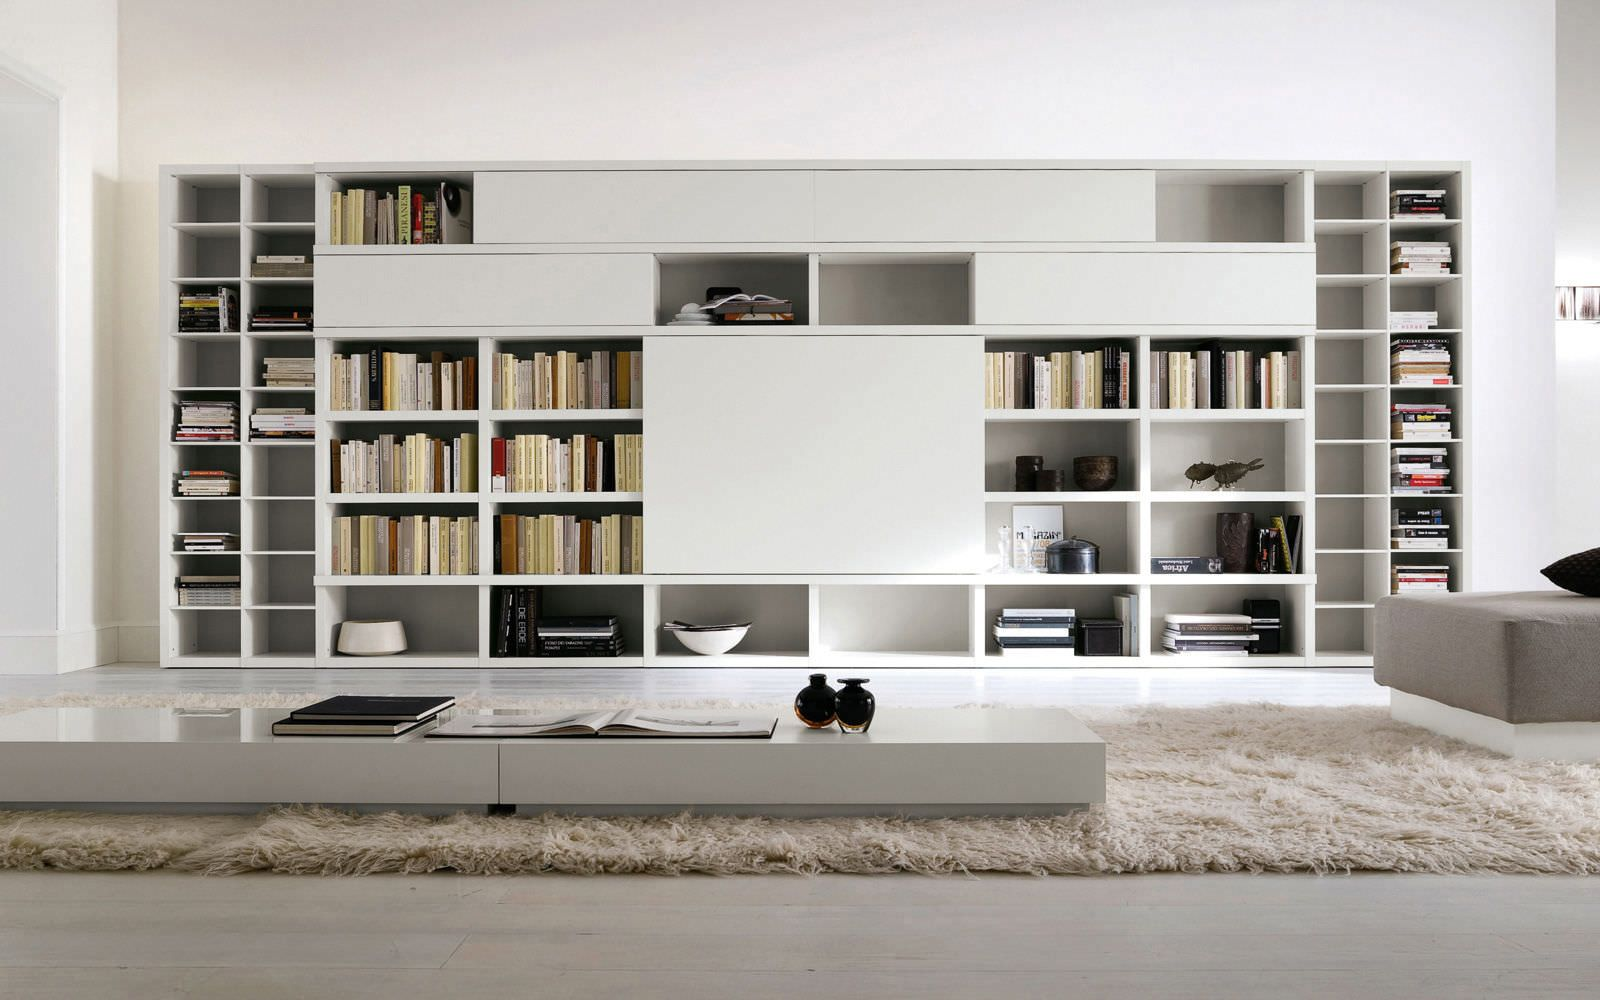 Astonishing Furniture Wonderful White Lacquered Contemporary Big Bookcase Design Cool Home Interior Book Storage Cool Bookcases Perfect For Smart Storage